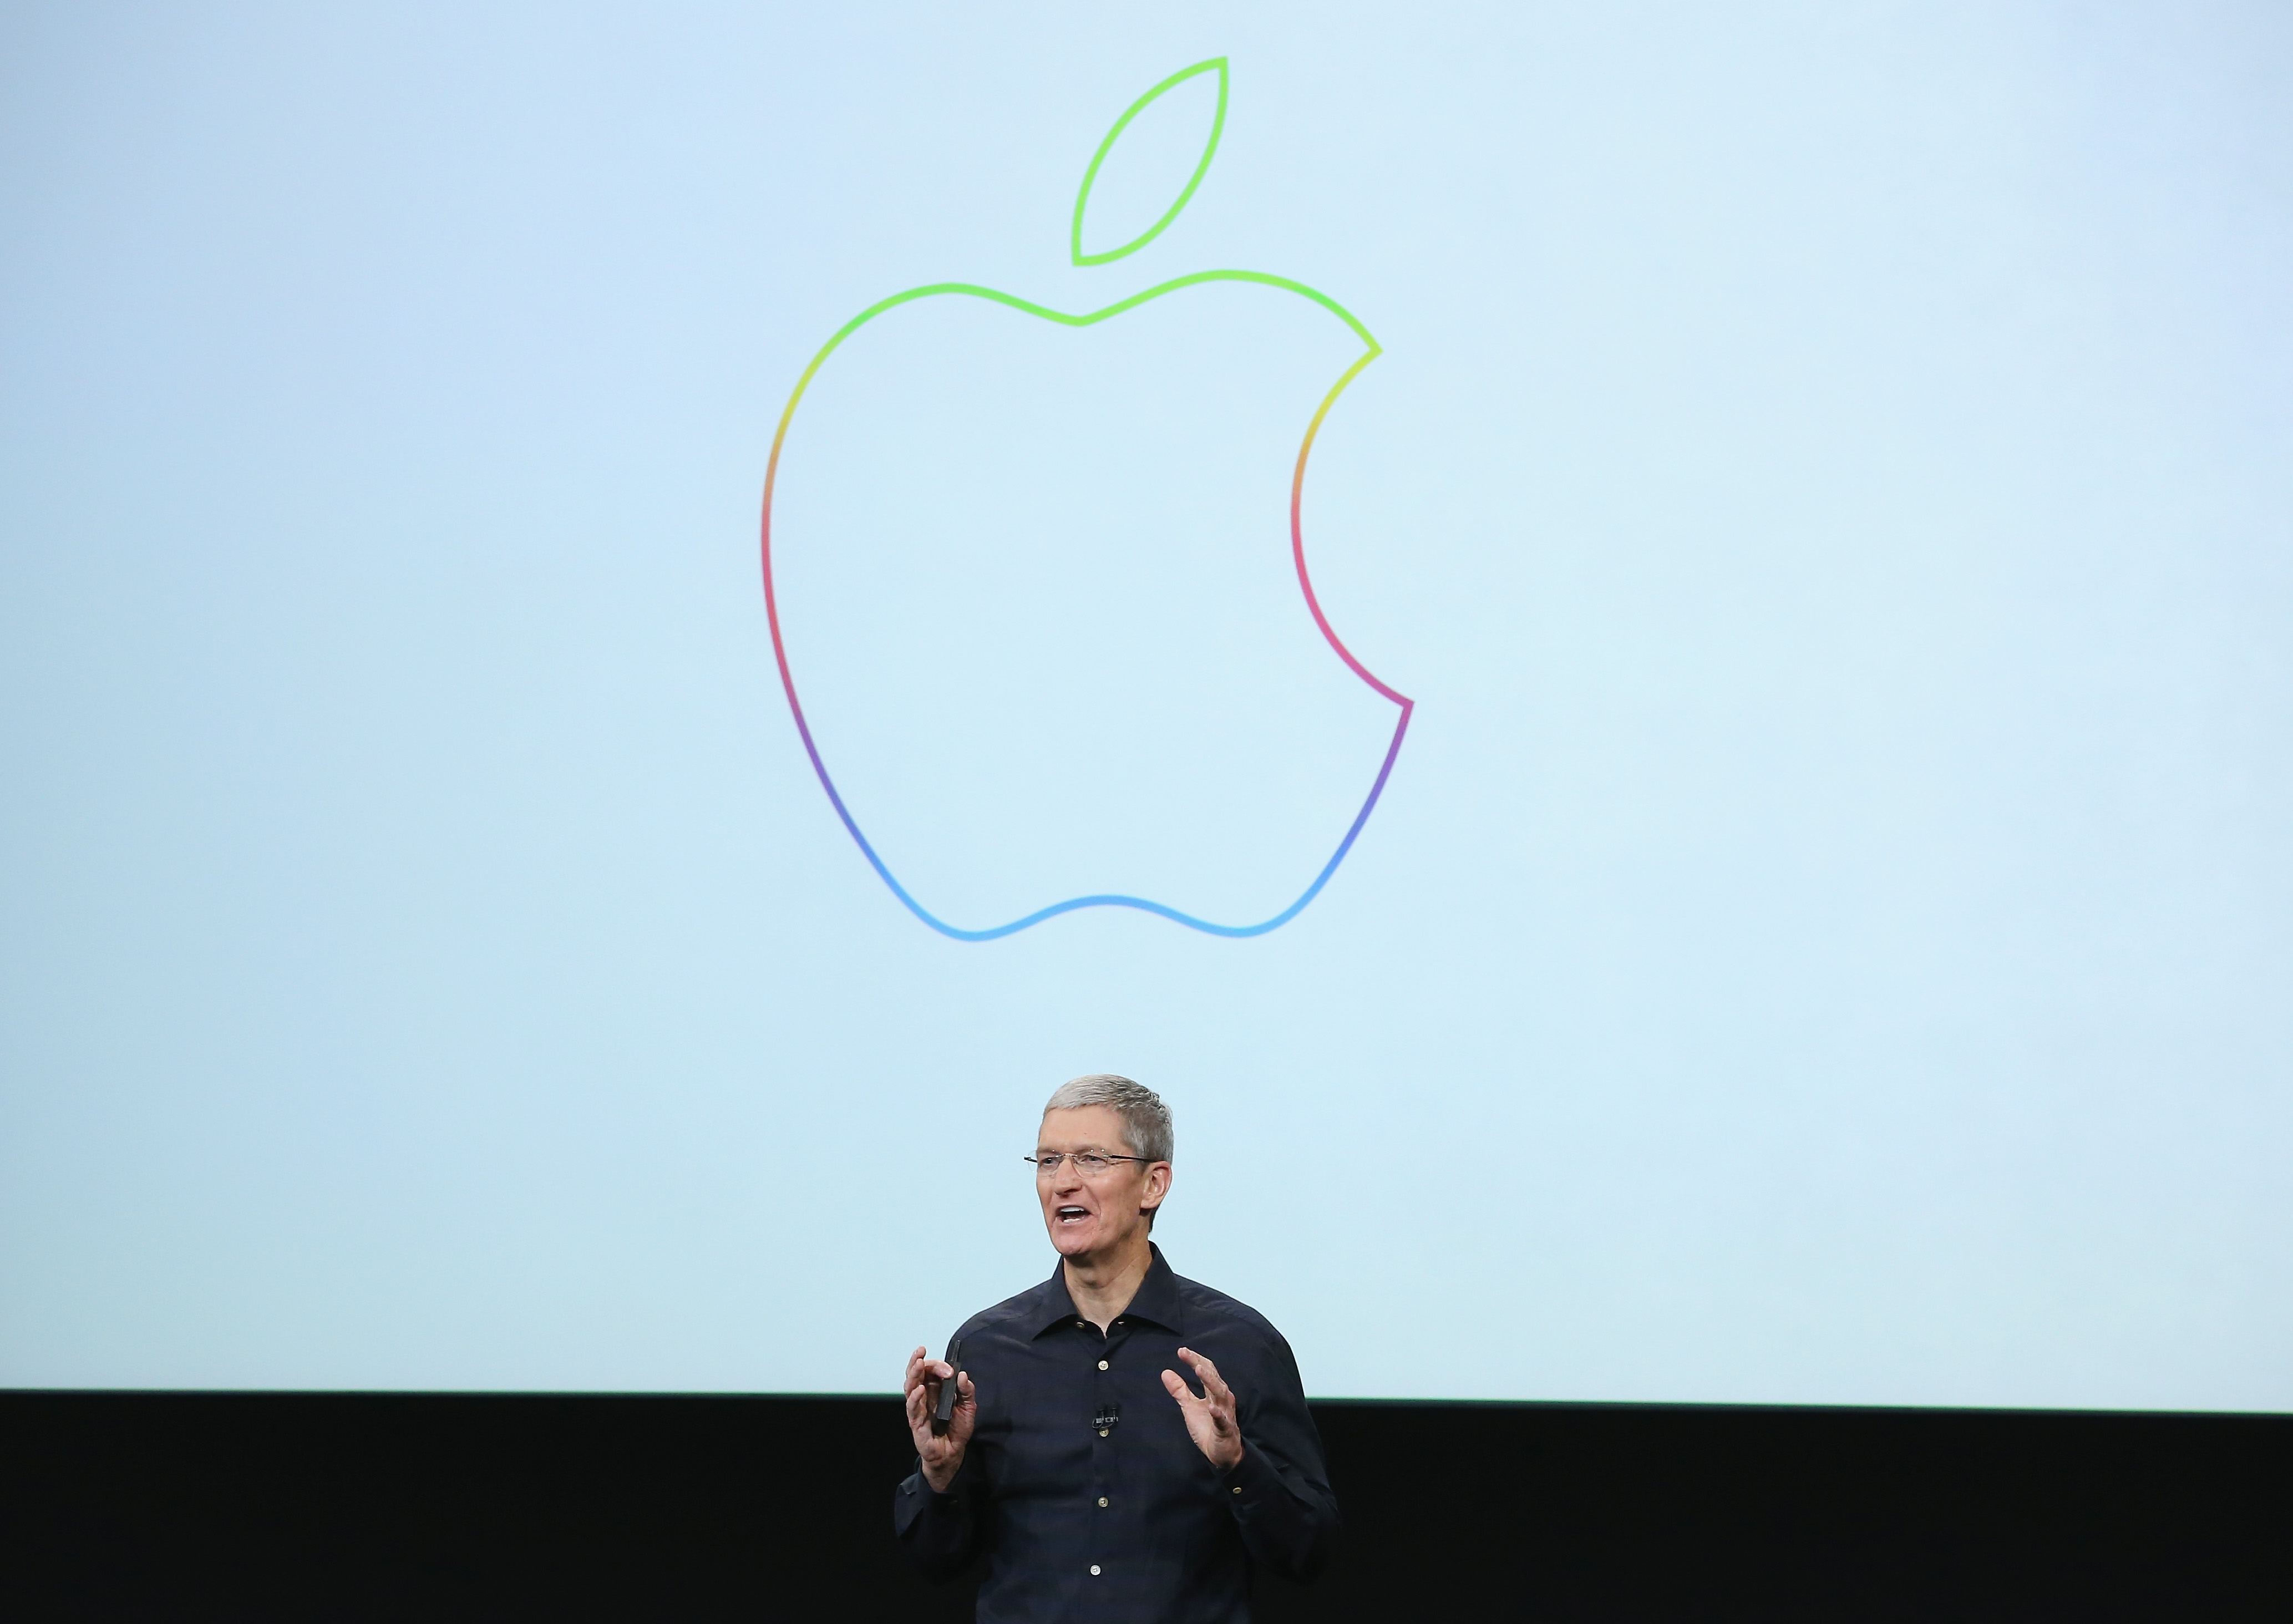 Apple CEO Tim Cook speaks during an event introducing new iPads at Apple's headquarters October 16, 2014 in Cupertino, California.  (Photo by Justin Sullivan/Getty Images)